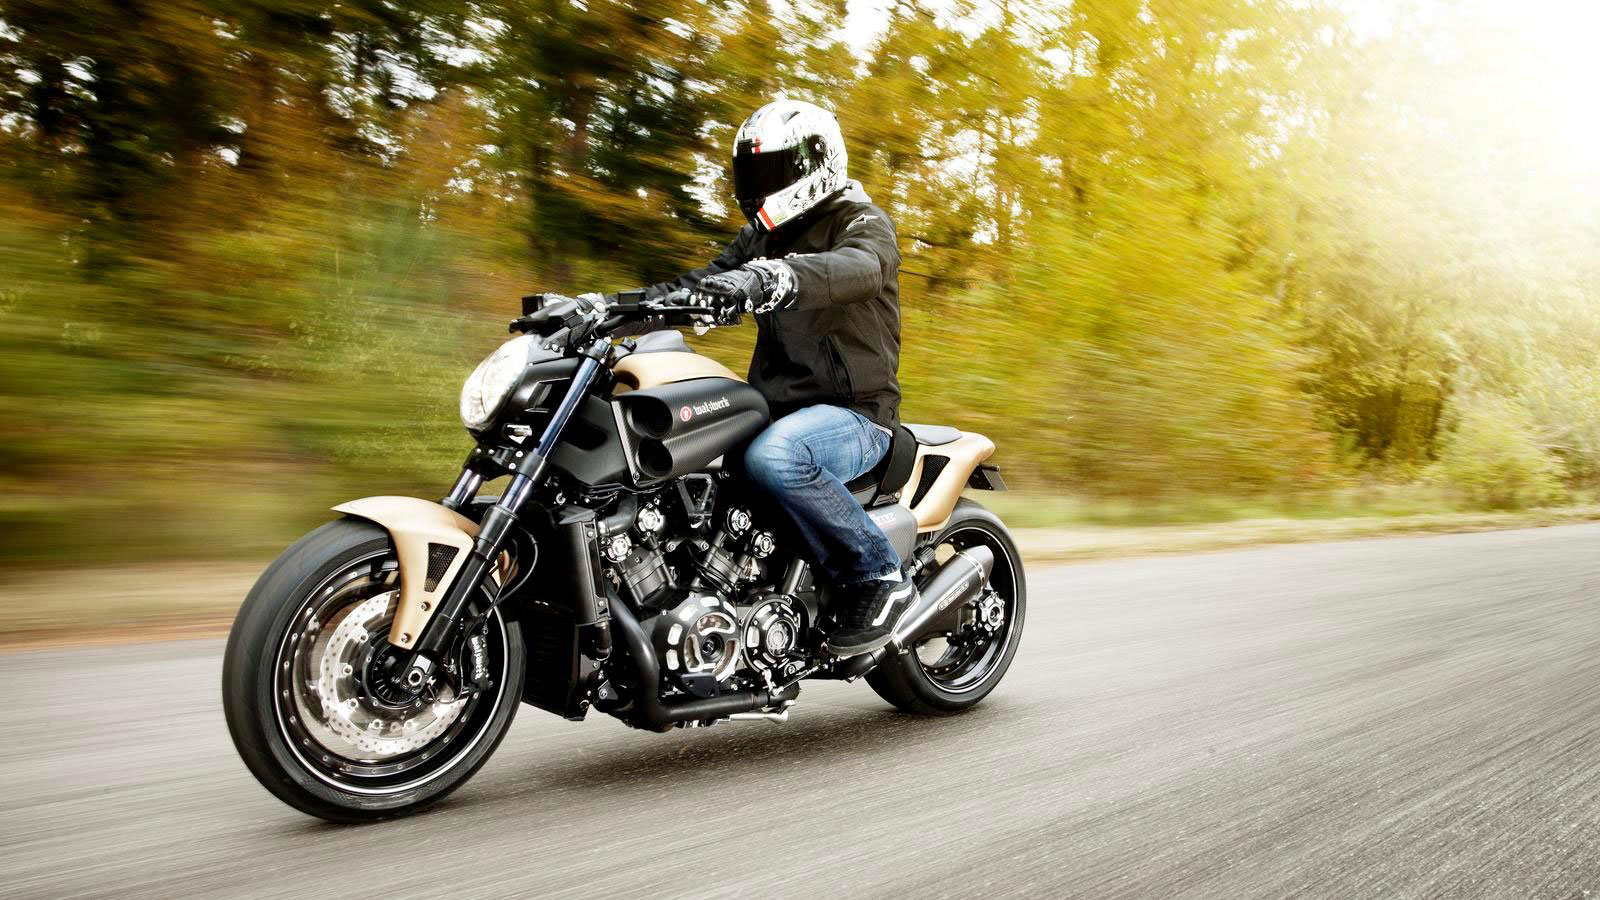 Yamaha VMAX Hyper Modified Marcus Walz 2013 images #92099